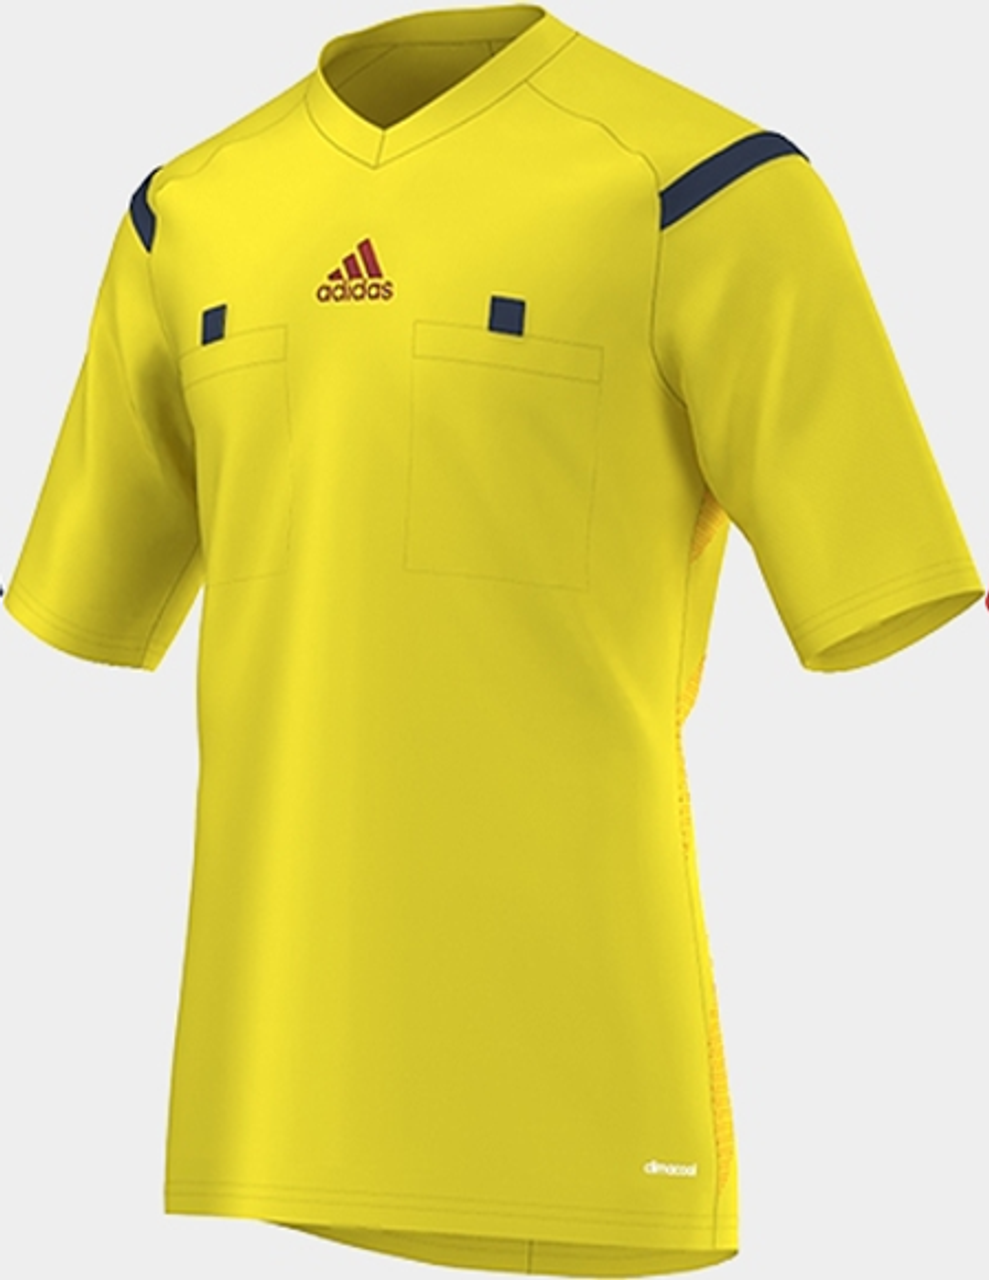 f8d07609 ADIDAS REFEREE WORLD CUP 2014 JERSEY YELLOW - Soccer Plus